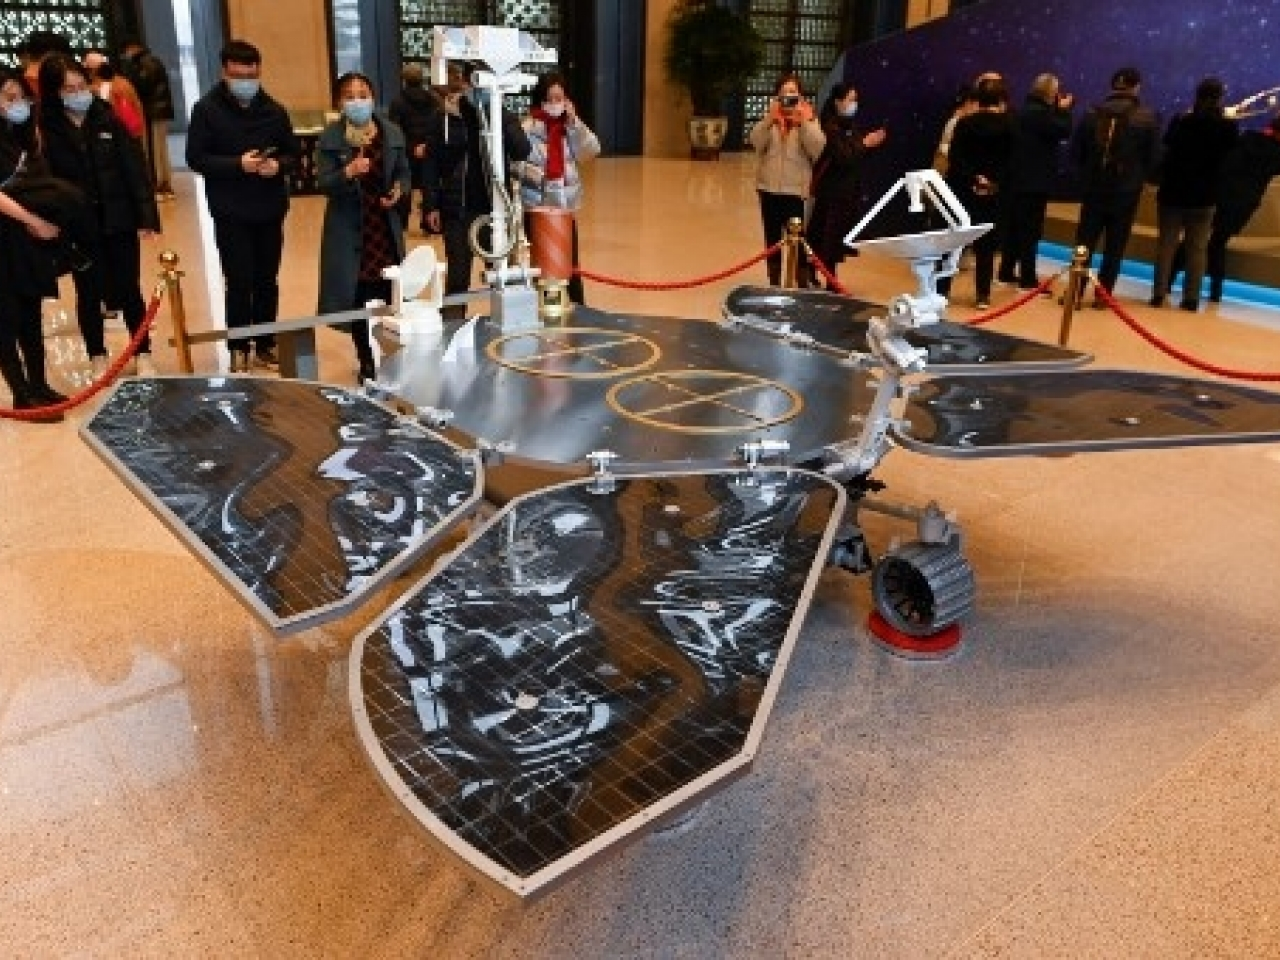 A model of the Tianwen-1 Mars rover on display during an exhibition at the National Museum of China in Beijing. File photo: AFP